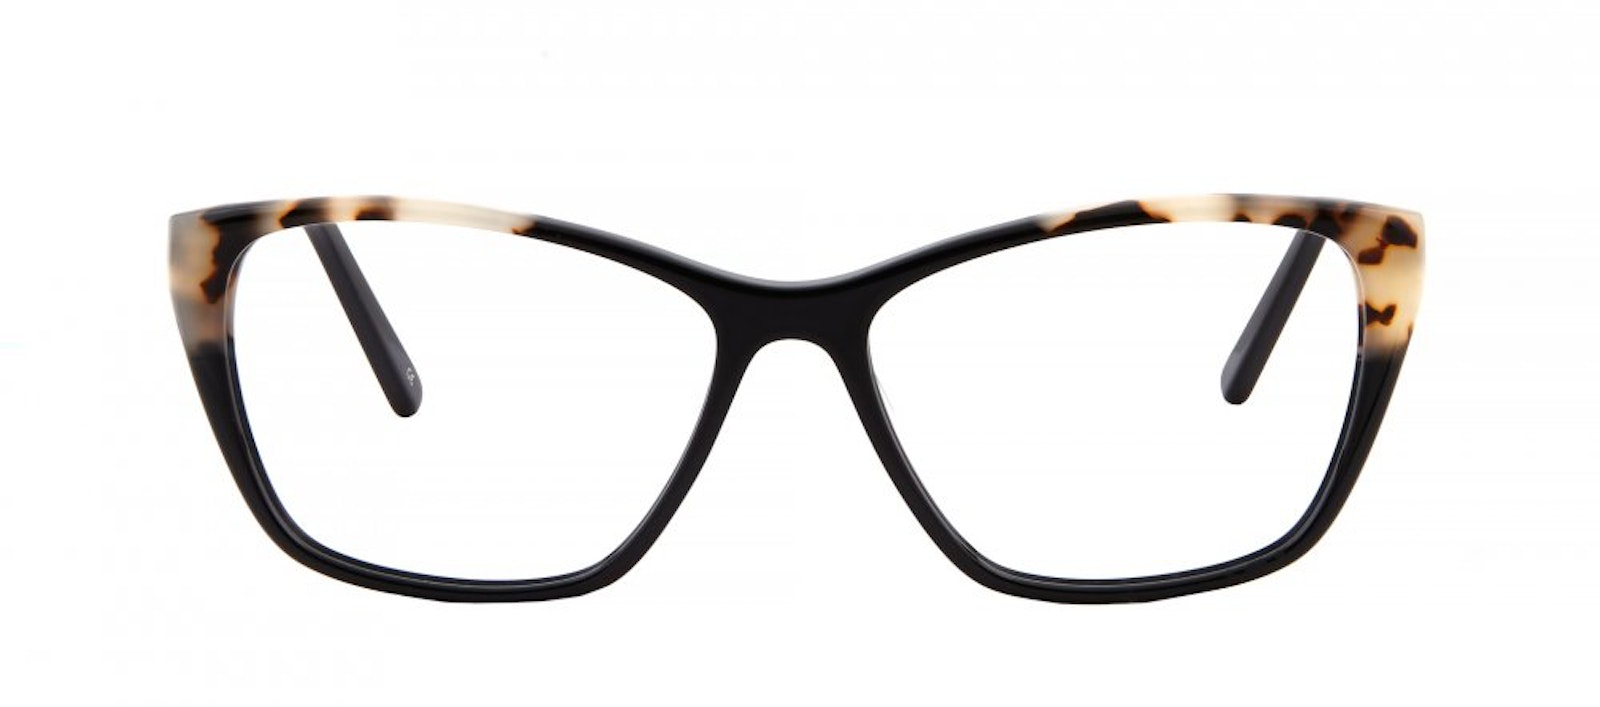 Affordable Fashion Glasses Cat Eye Rectangle Eyeglasses Women Myrtle Ebony Granite Front